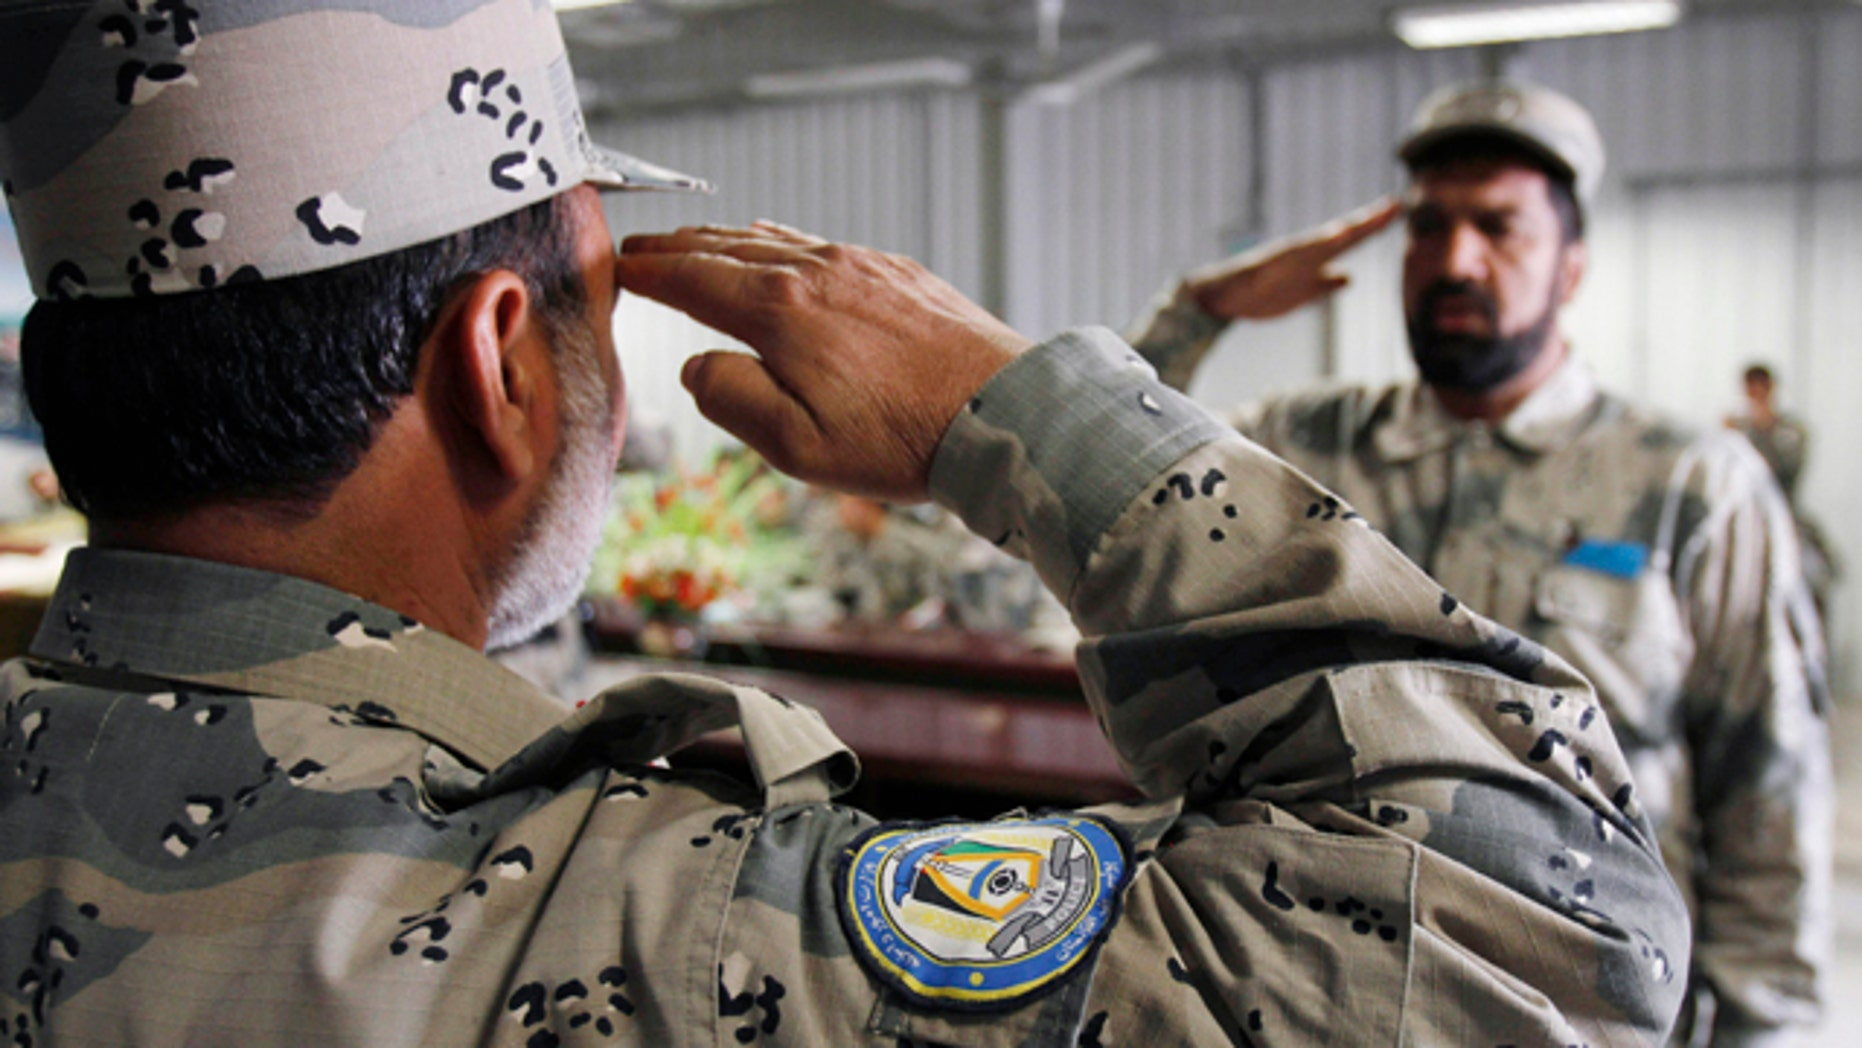 Jan. 31: An Afghan newly graduated border police officer, right, salutes his commander before receiving his certification during a graduation ceremony at the border police headquarter in Jalalabad, Nangarhar province east of Kabul, Afghanistan.